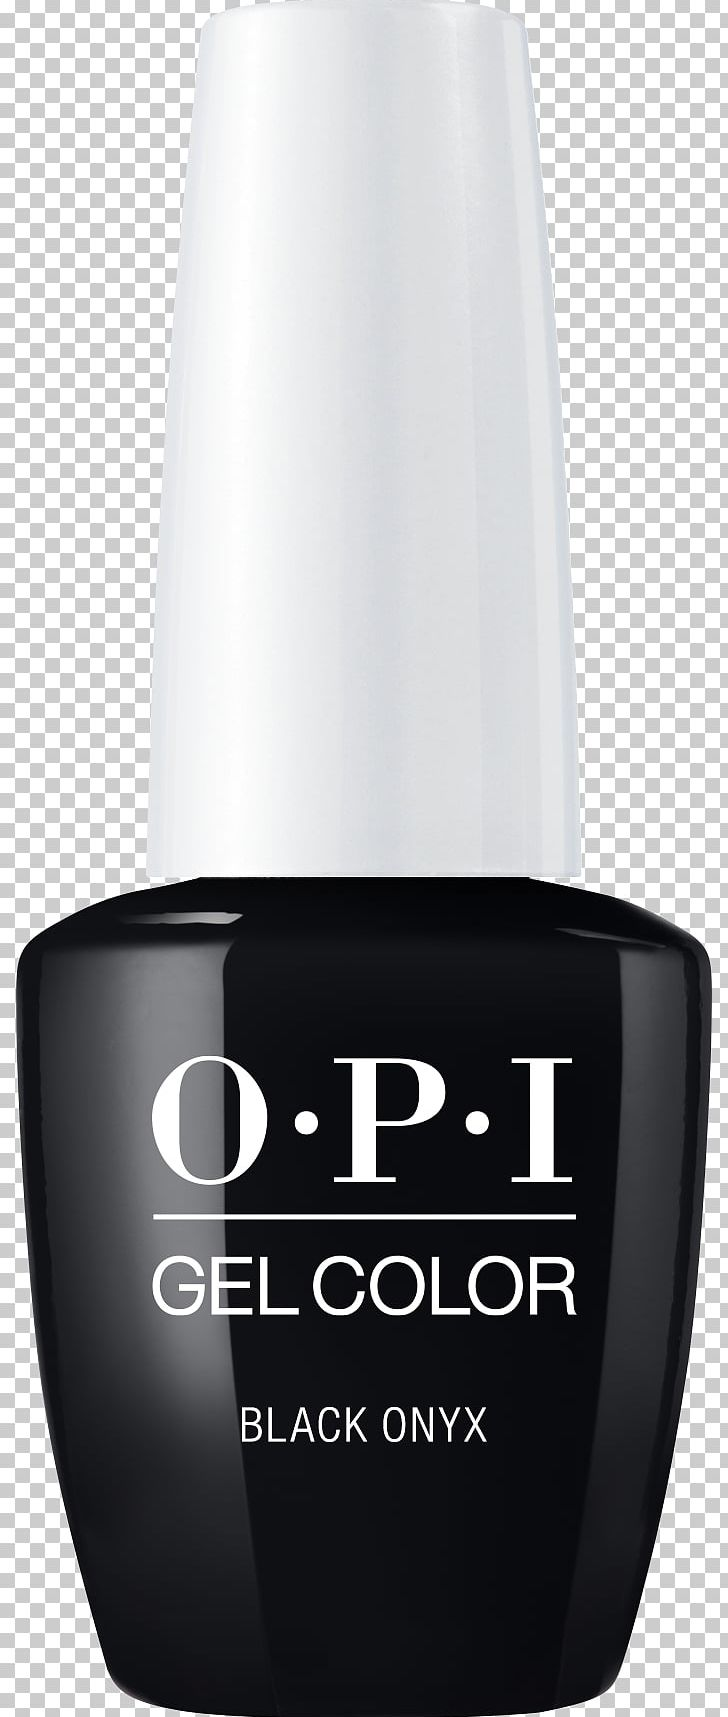 Cosmetics OPI Products OPI GelColor Nail Polish PNG, Clipart, Beauty ...